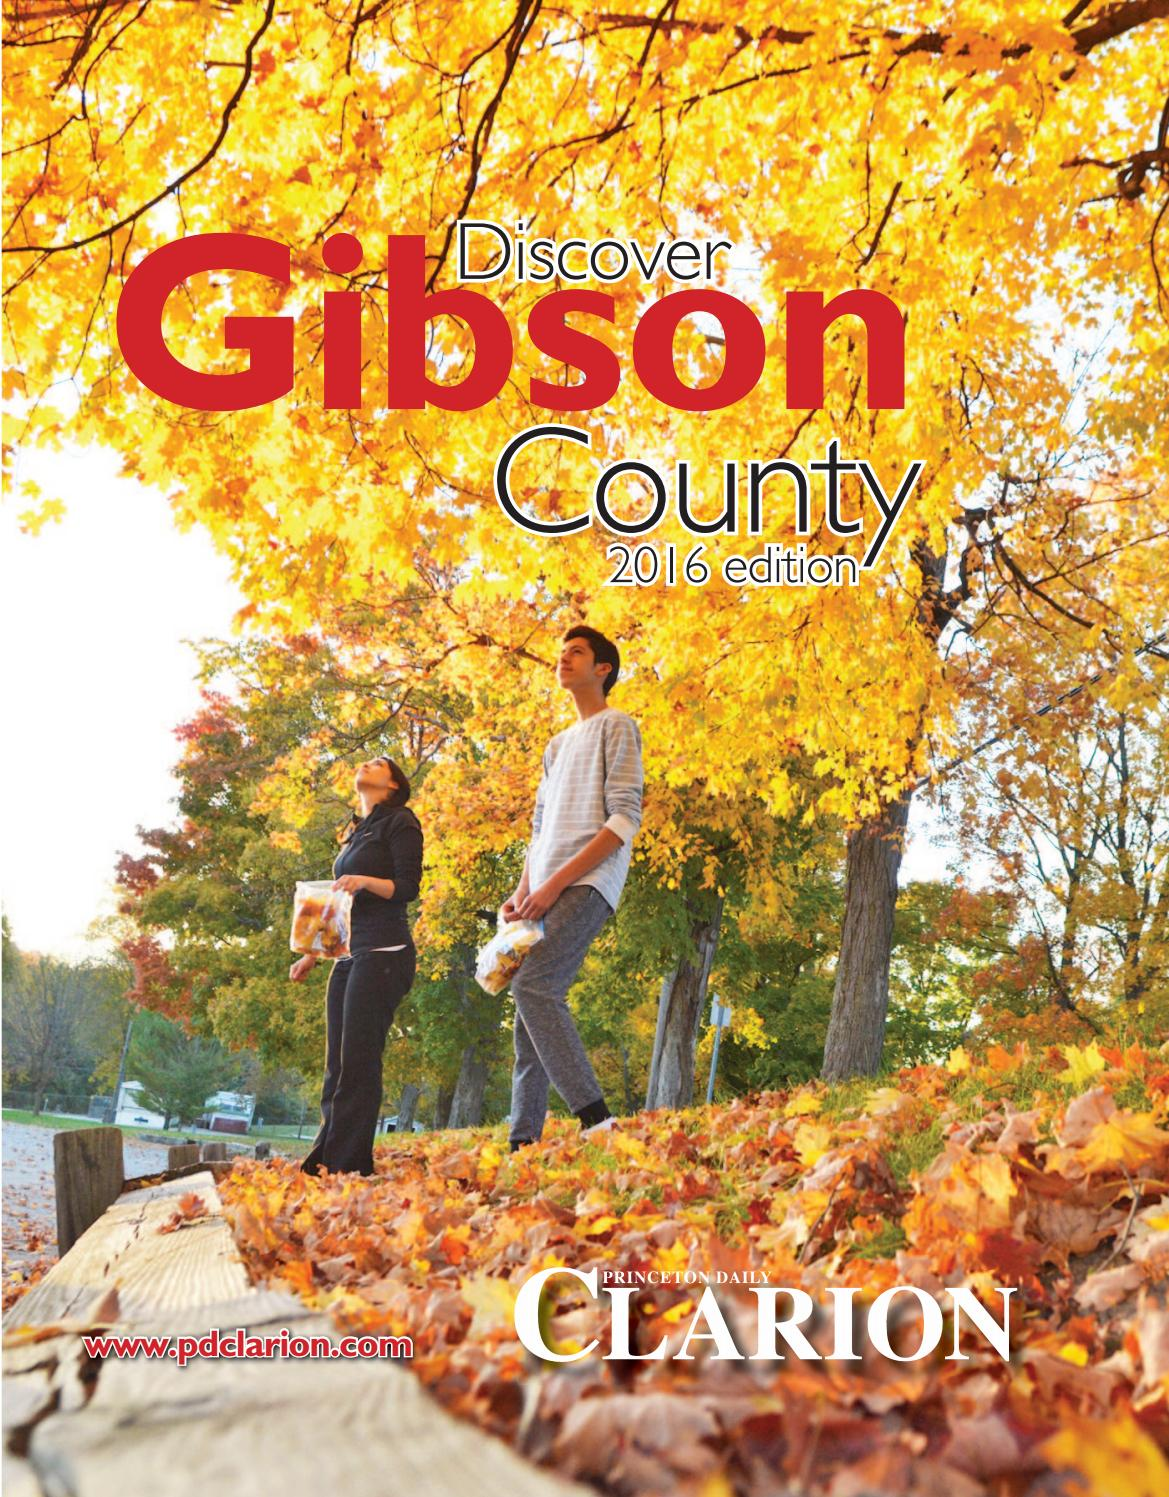 Indiana gibson county francisco - Discover Gibson County 2016 By Princeton Daily Clarion Mt Carmel Register Warrick Standard Issuu